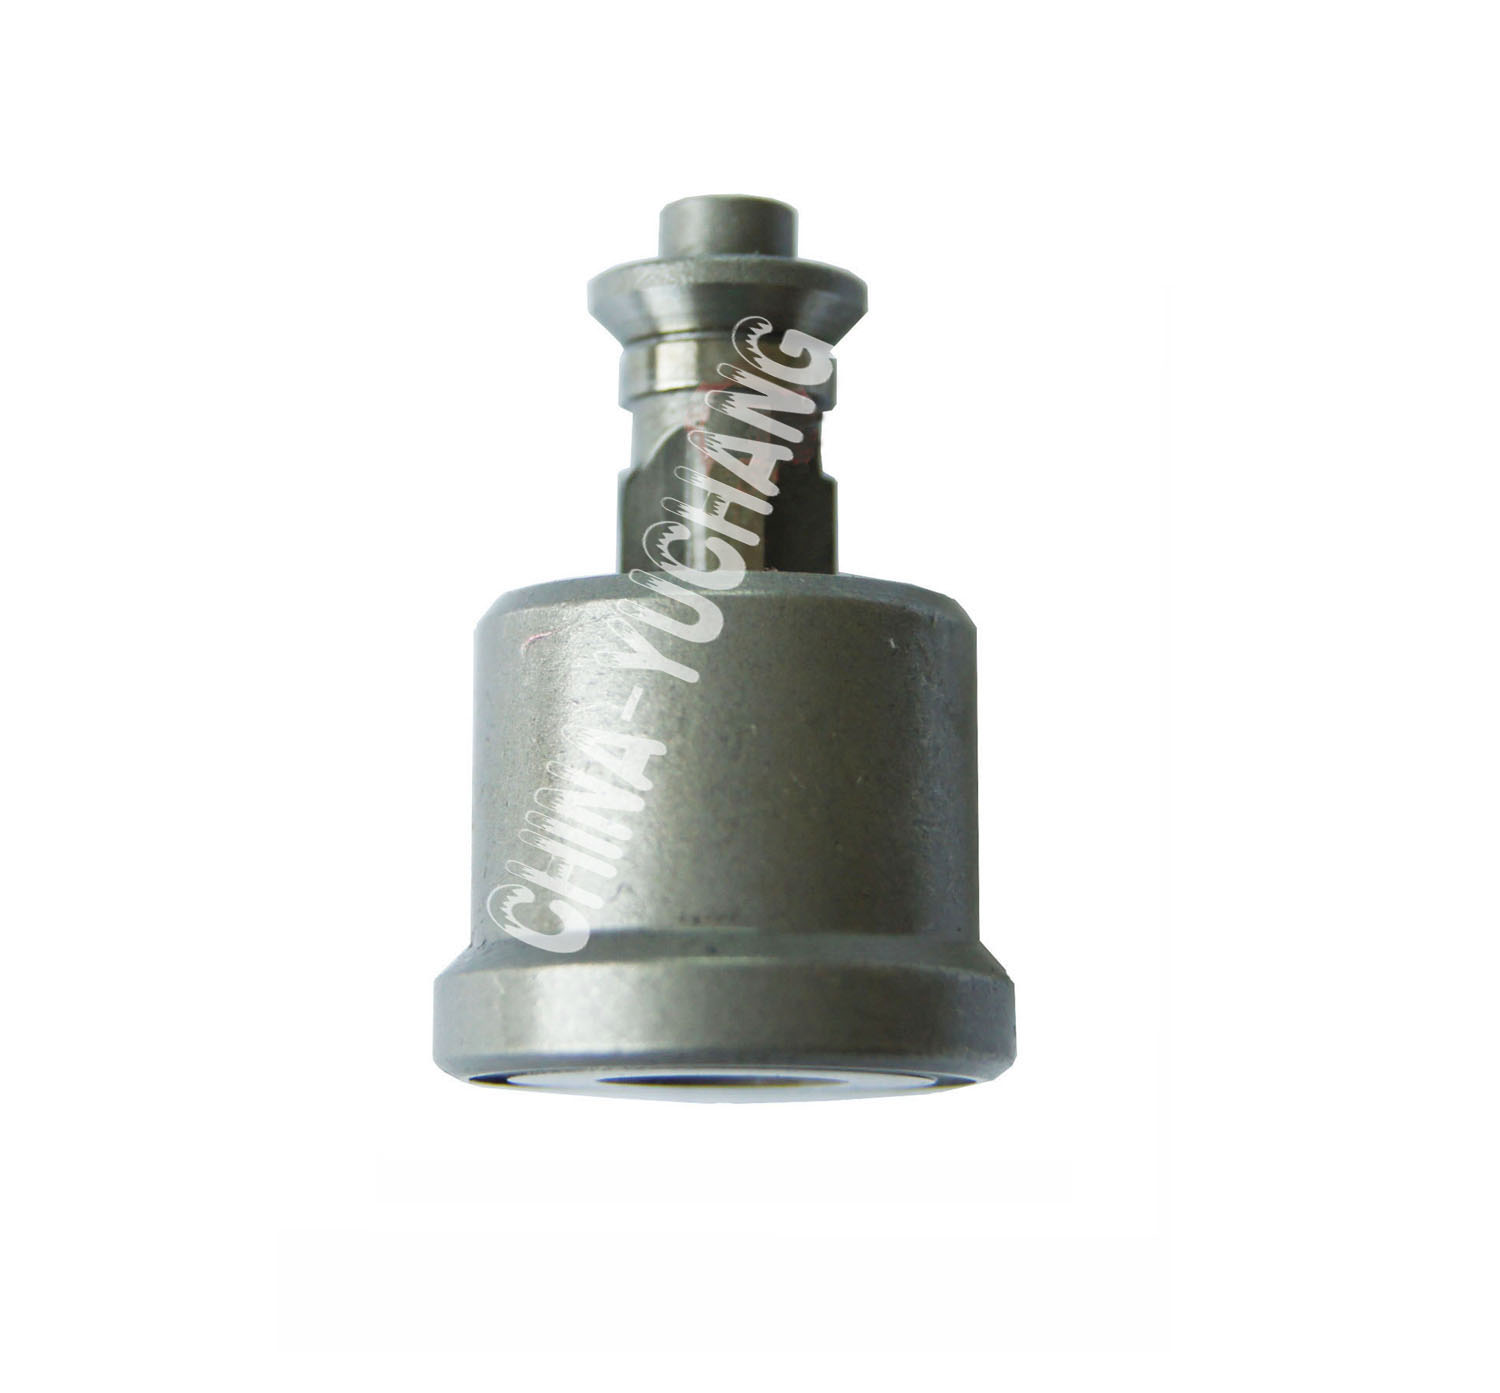 Delivery valves OVE162 2 418 552 003